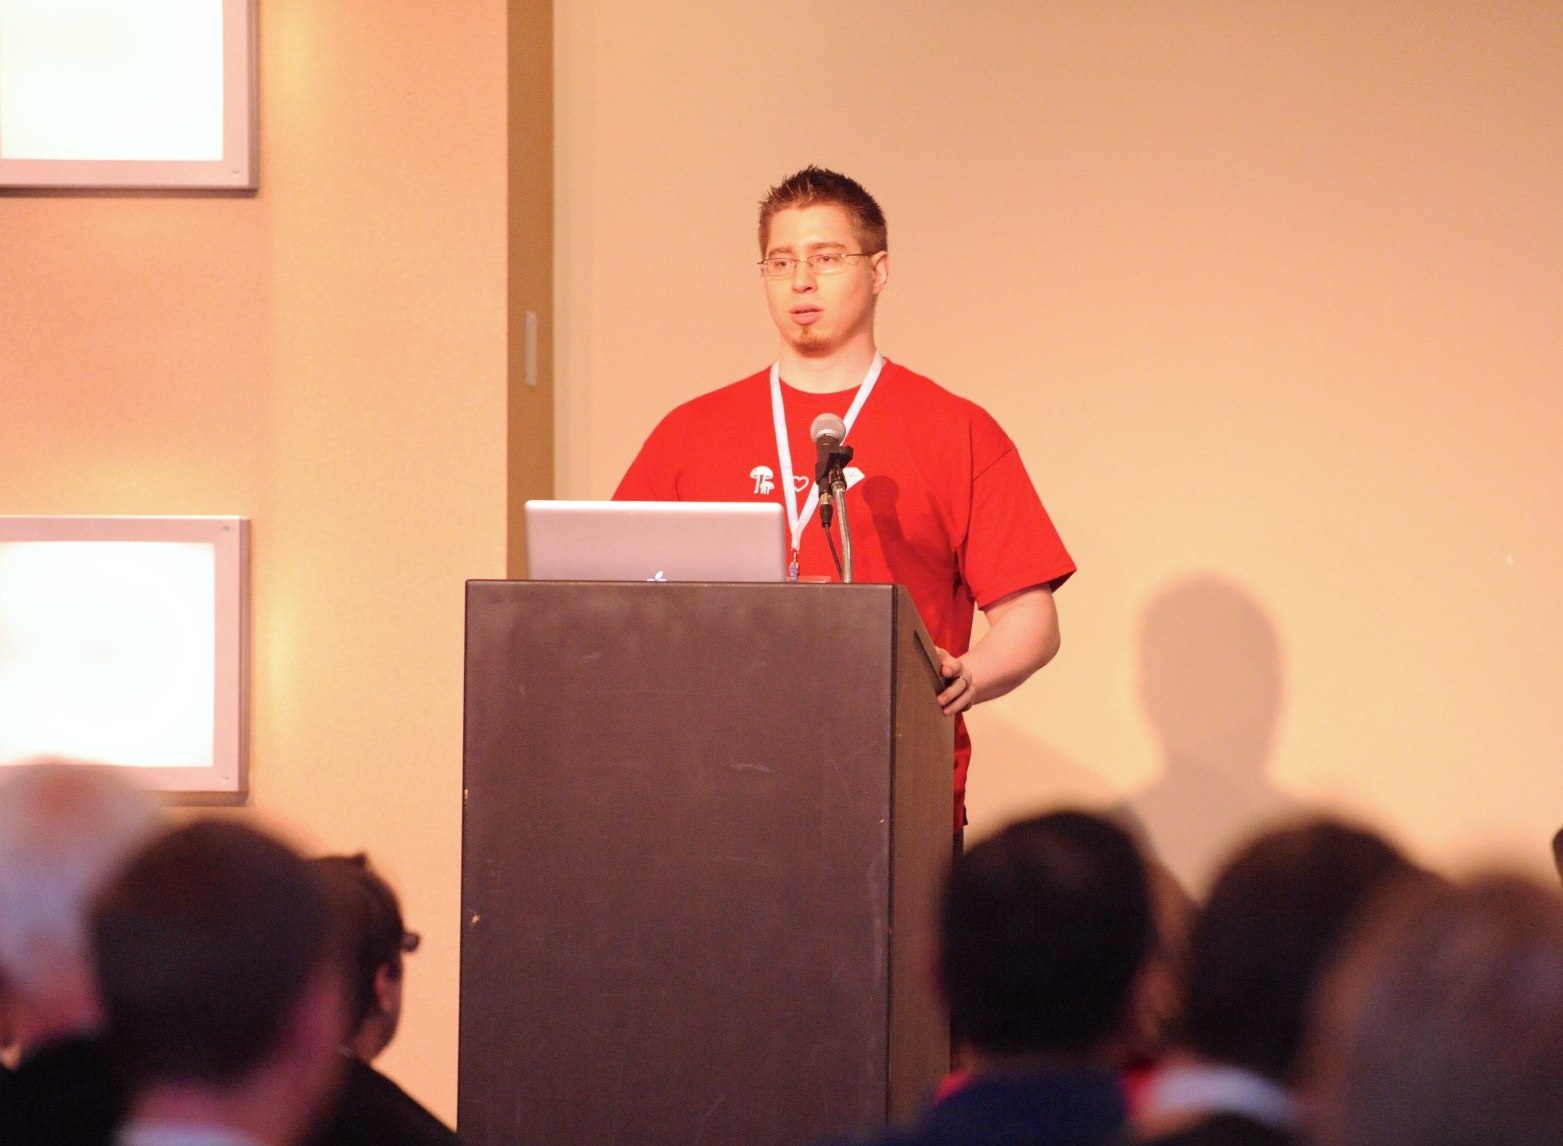 An image of me presenting at SCRC12